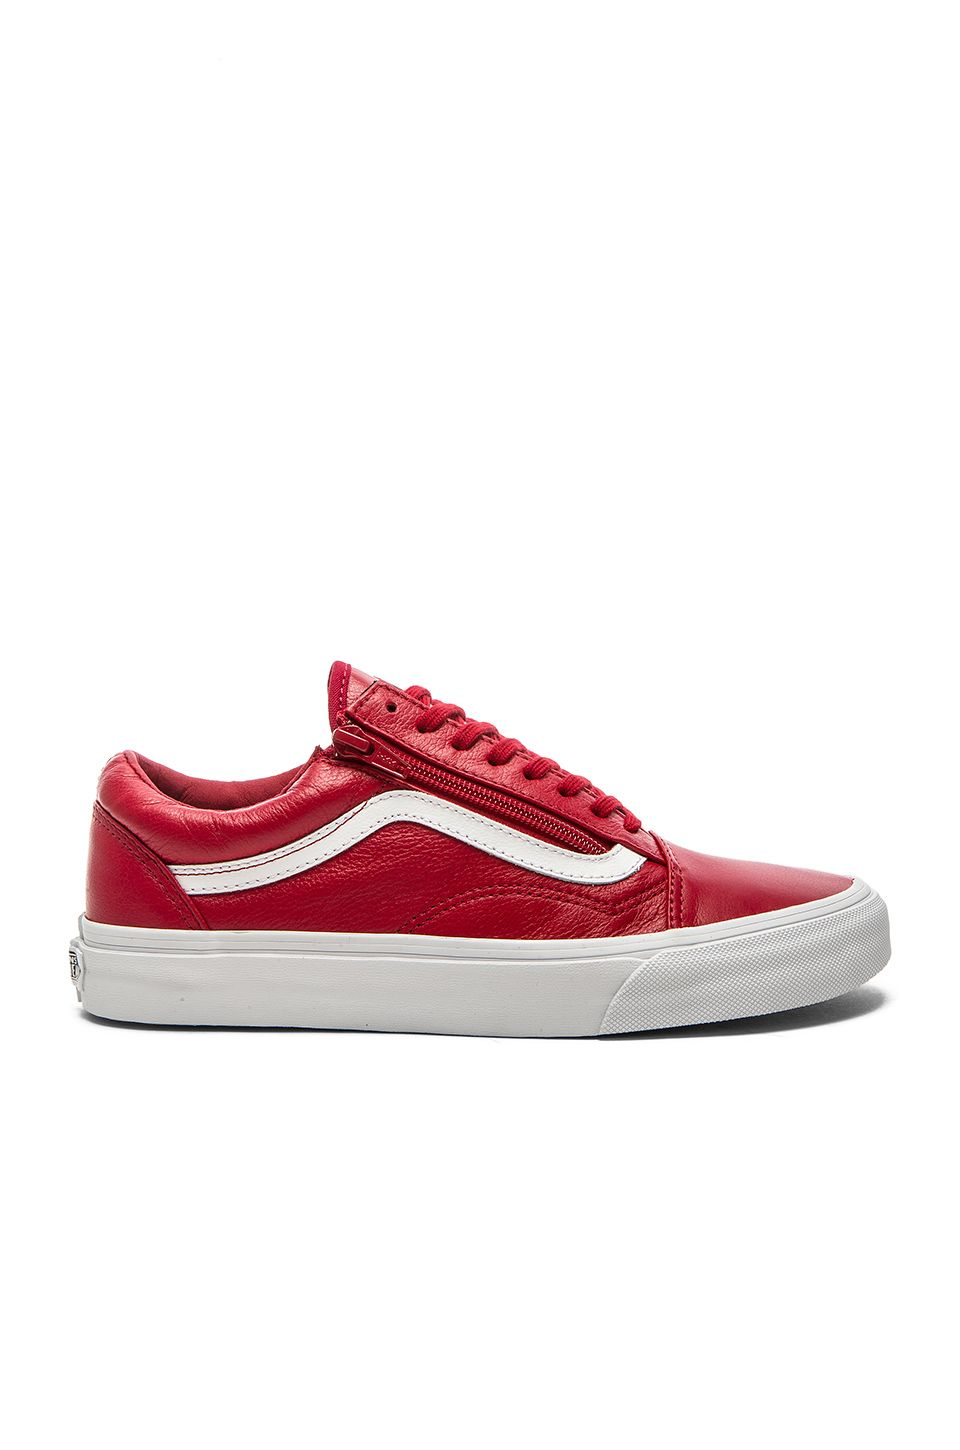 5fee85773b Buy 2 OFF ANY vans old skool zip premium red leather shoes CASE AND GET 70%  OFF!